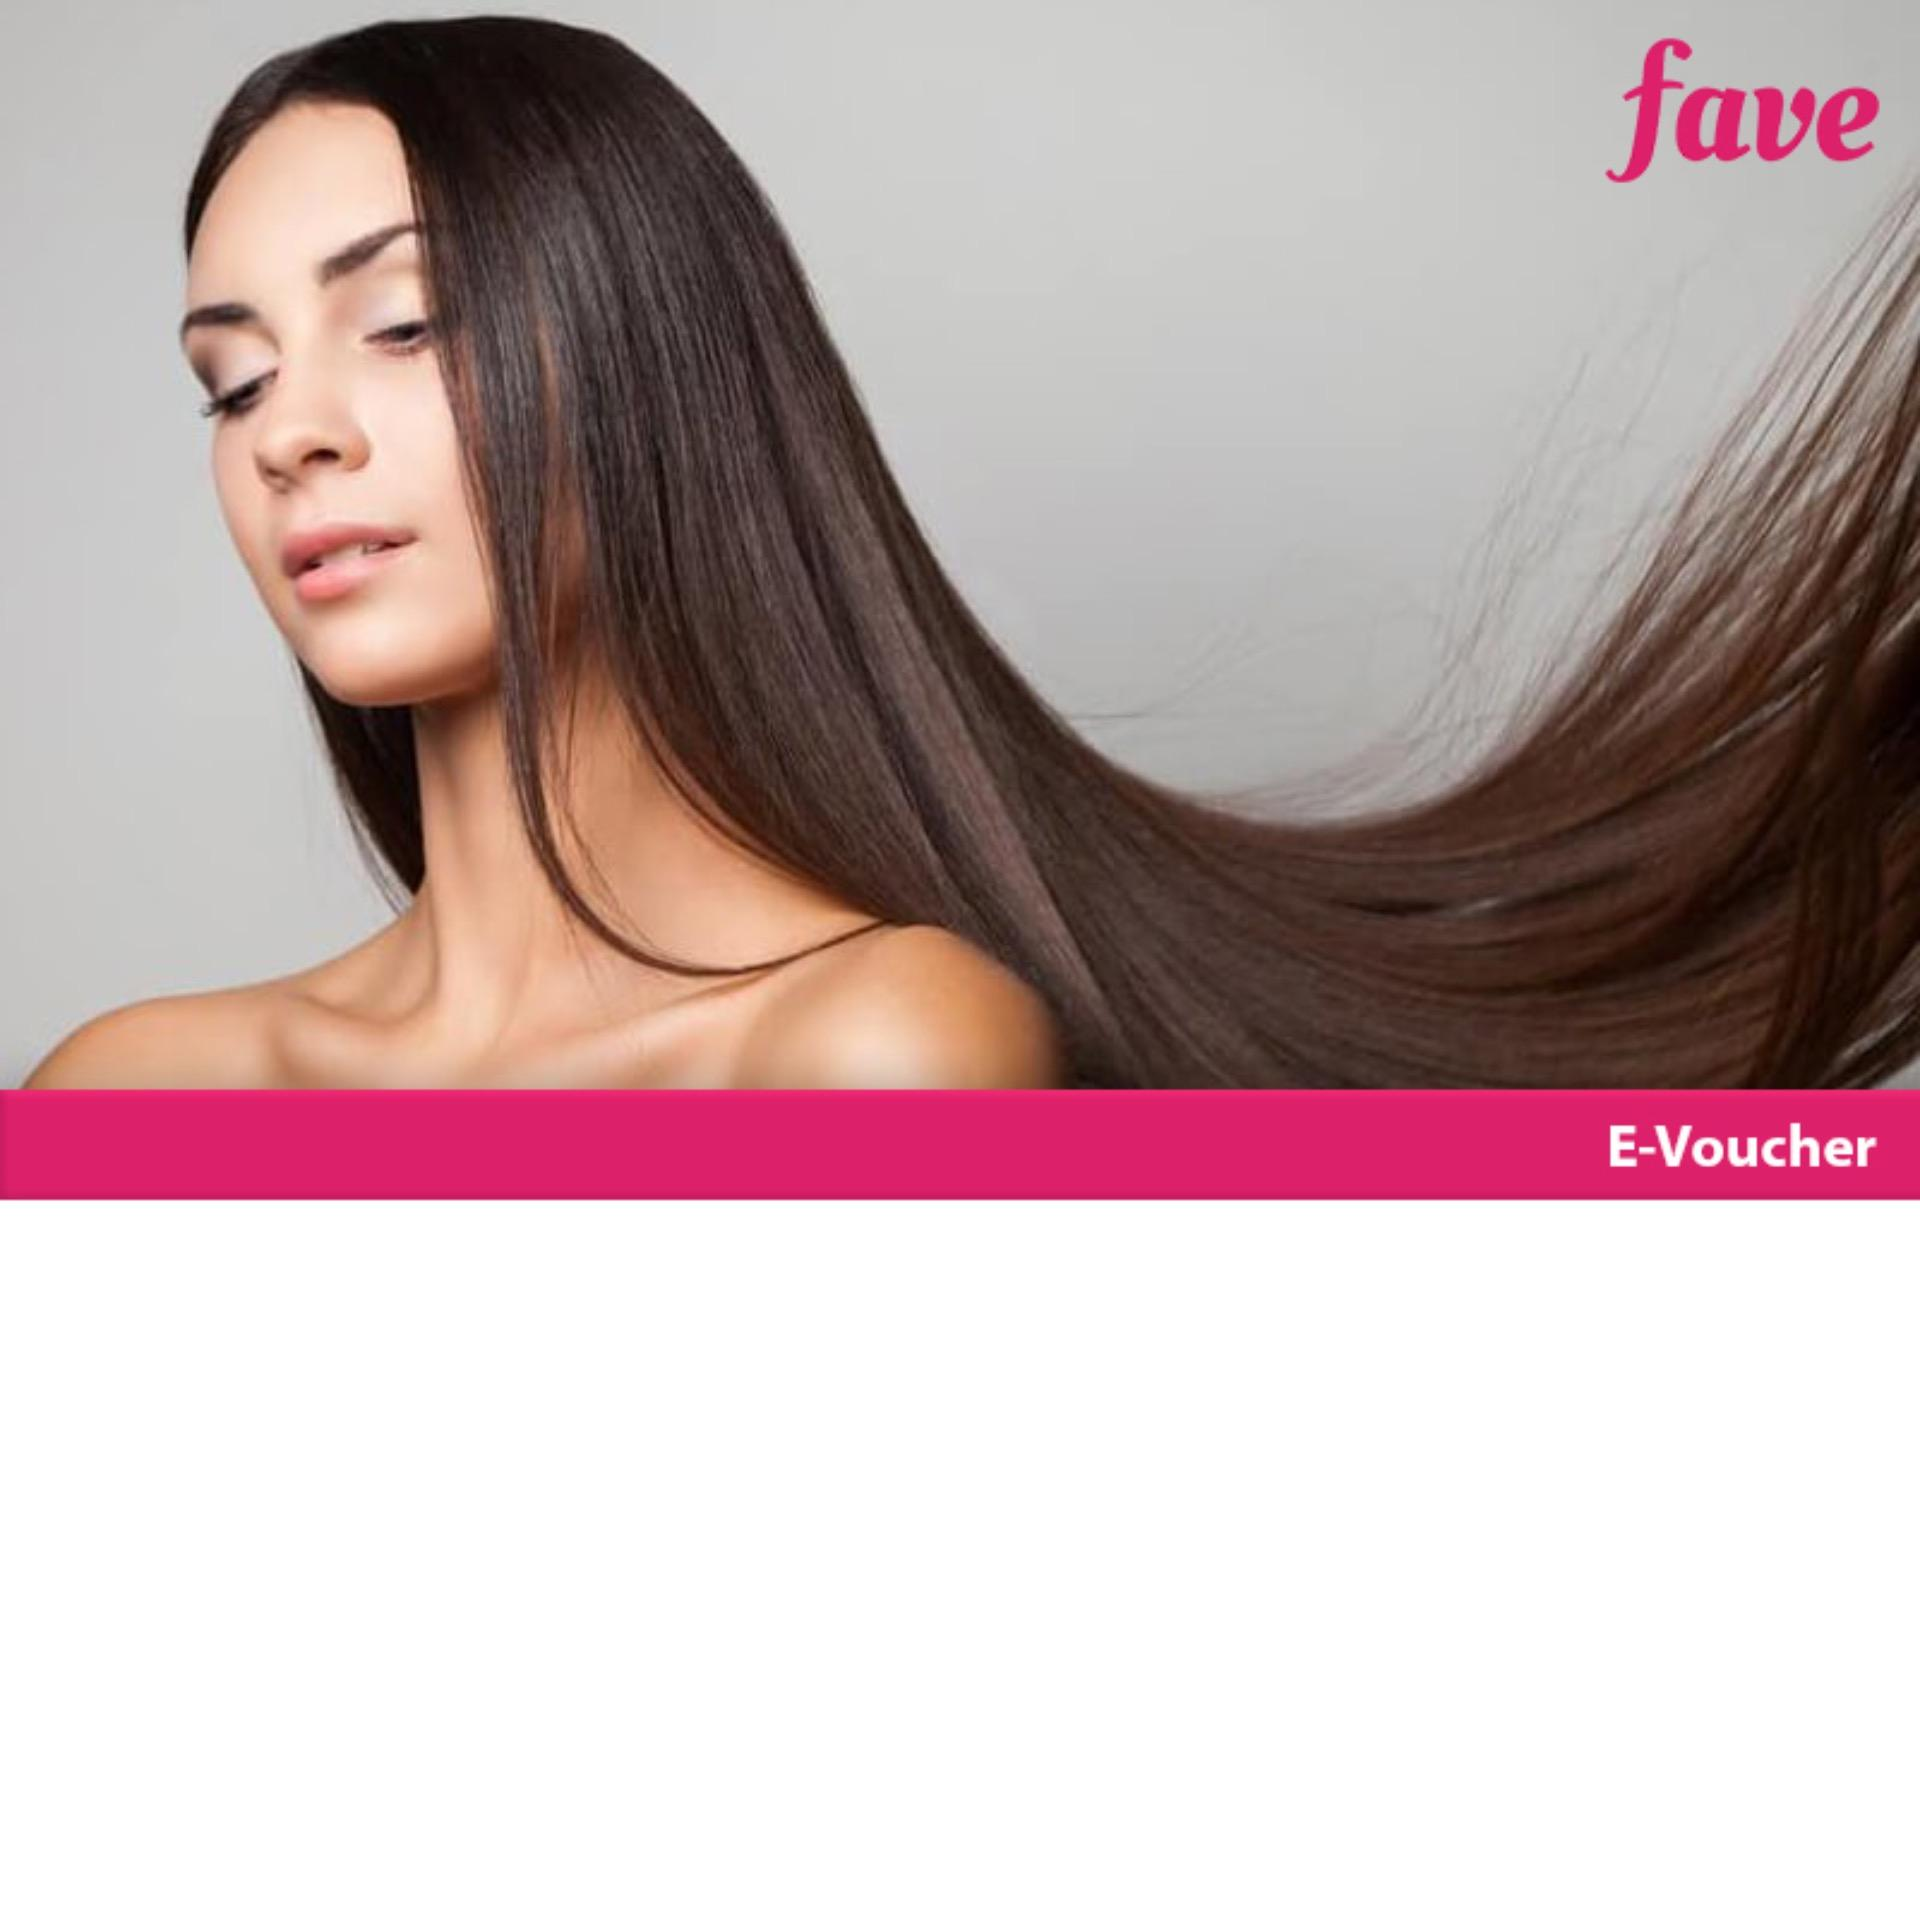 [menteng] The Beaute Prp Hair Growth By Fave Indonesia.